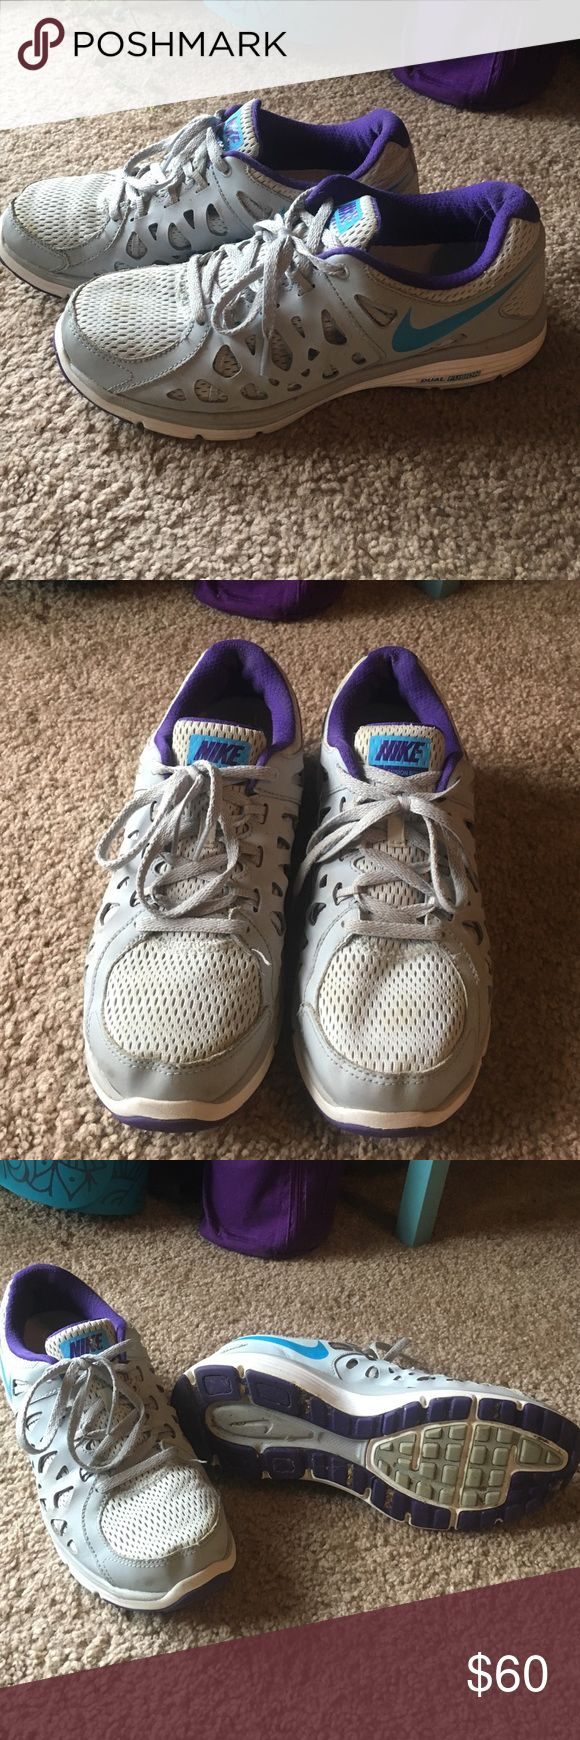 Nike Dual Fusion shoes - Women's size 10 Purple and grey Nike shoes. Fitsole. Worn only a few times for work. Barely broken in. Women's size 10. Make an offer! Nike Shoes Athletic Shoes